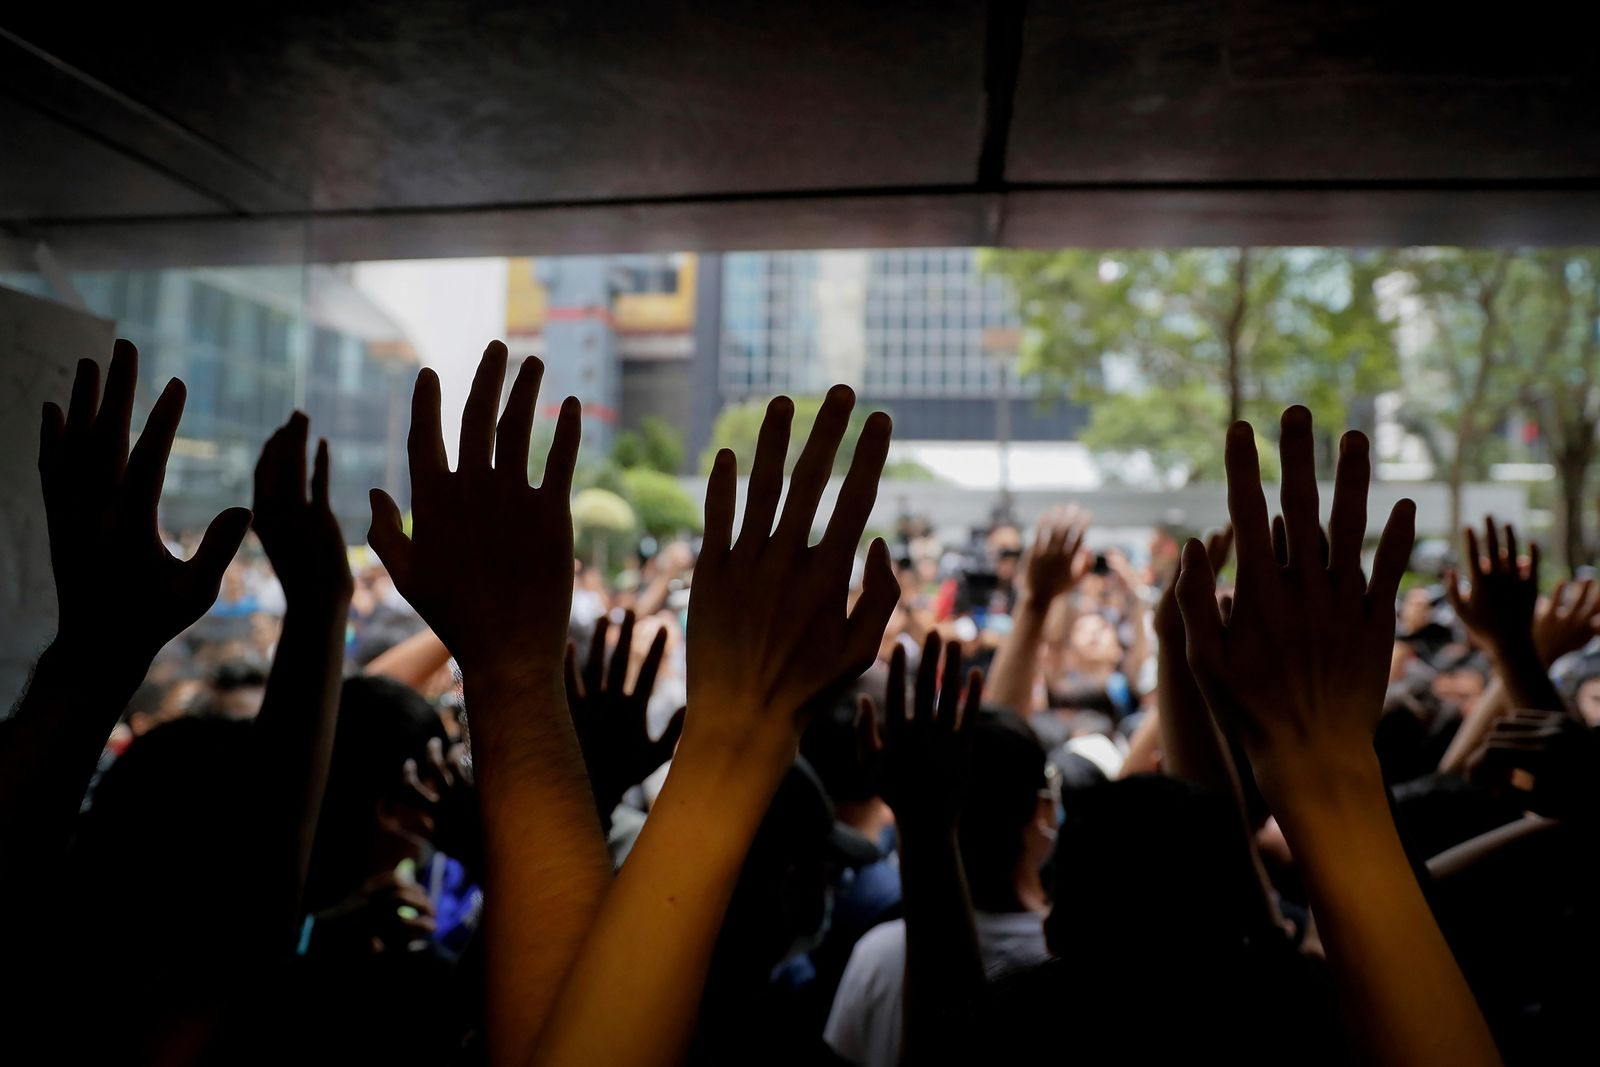 Protesters gesture inside the Hong Kong Revenue Tower as they block the building lobby to prevent people from entering in Hong Kong, Monday, June 24, 2019.{ } (AP Photo/Kin Cheung)